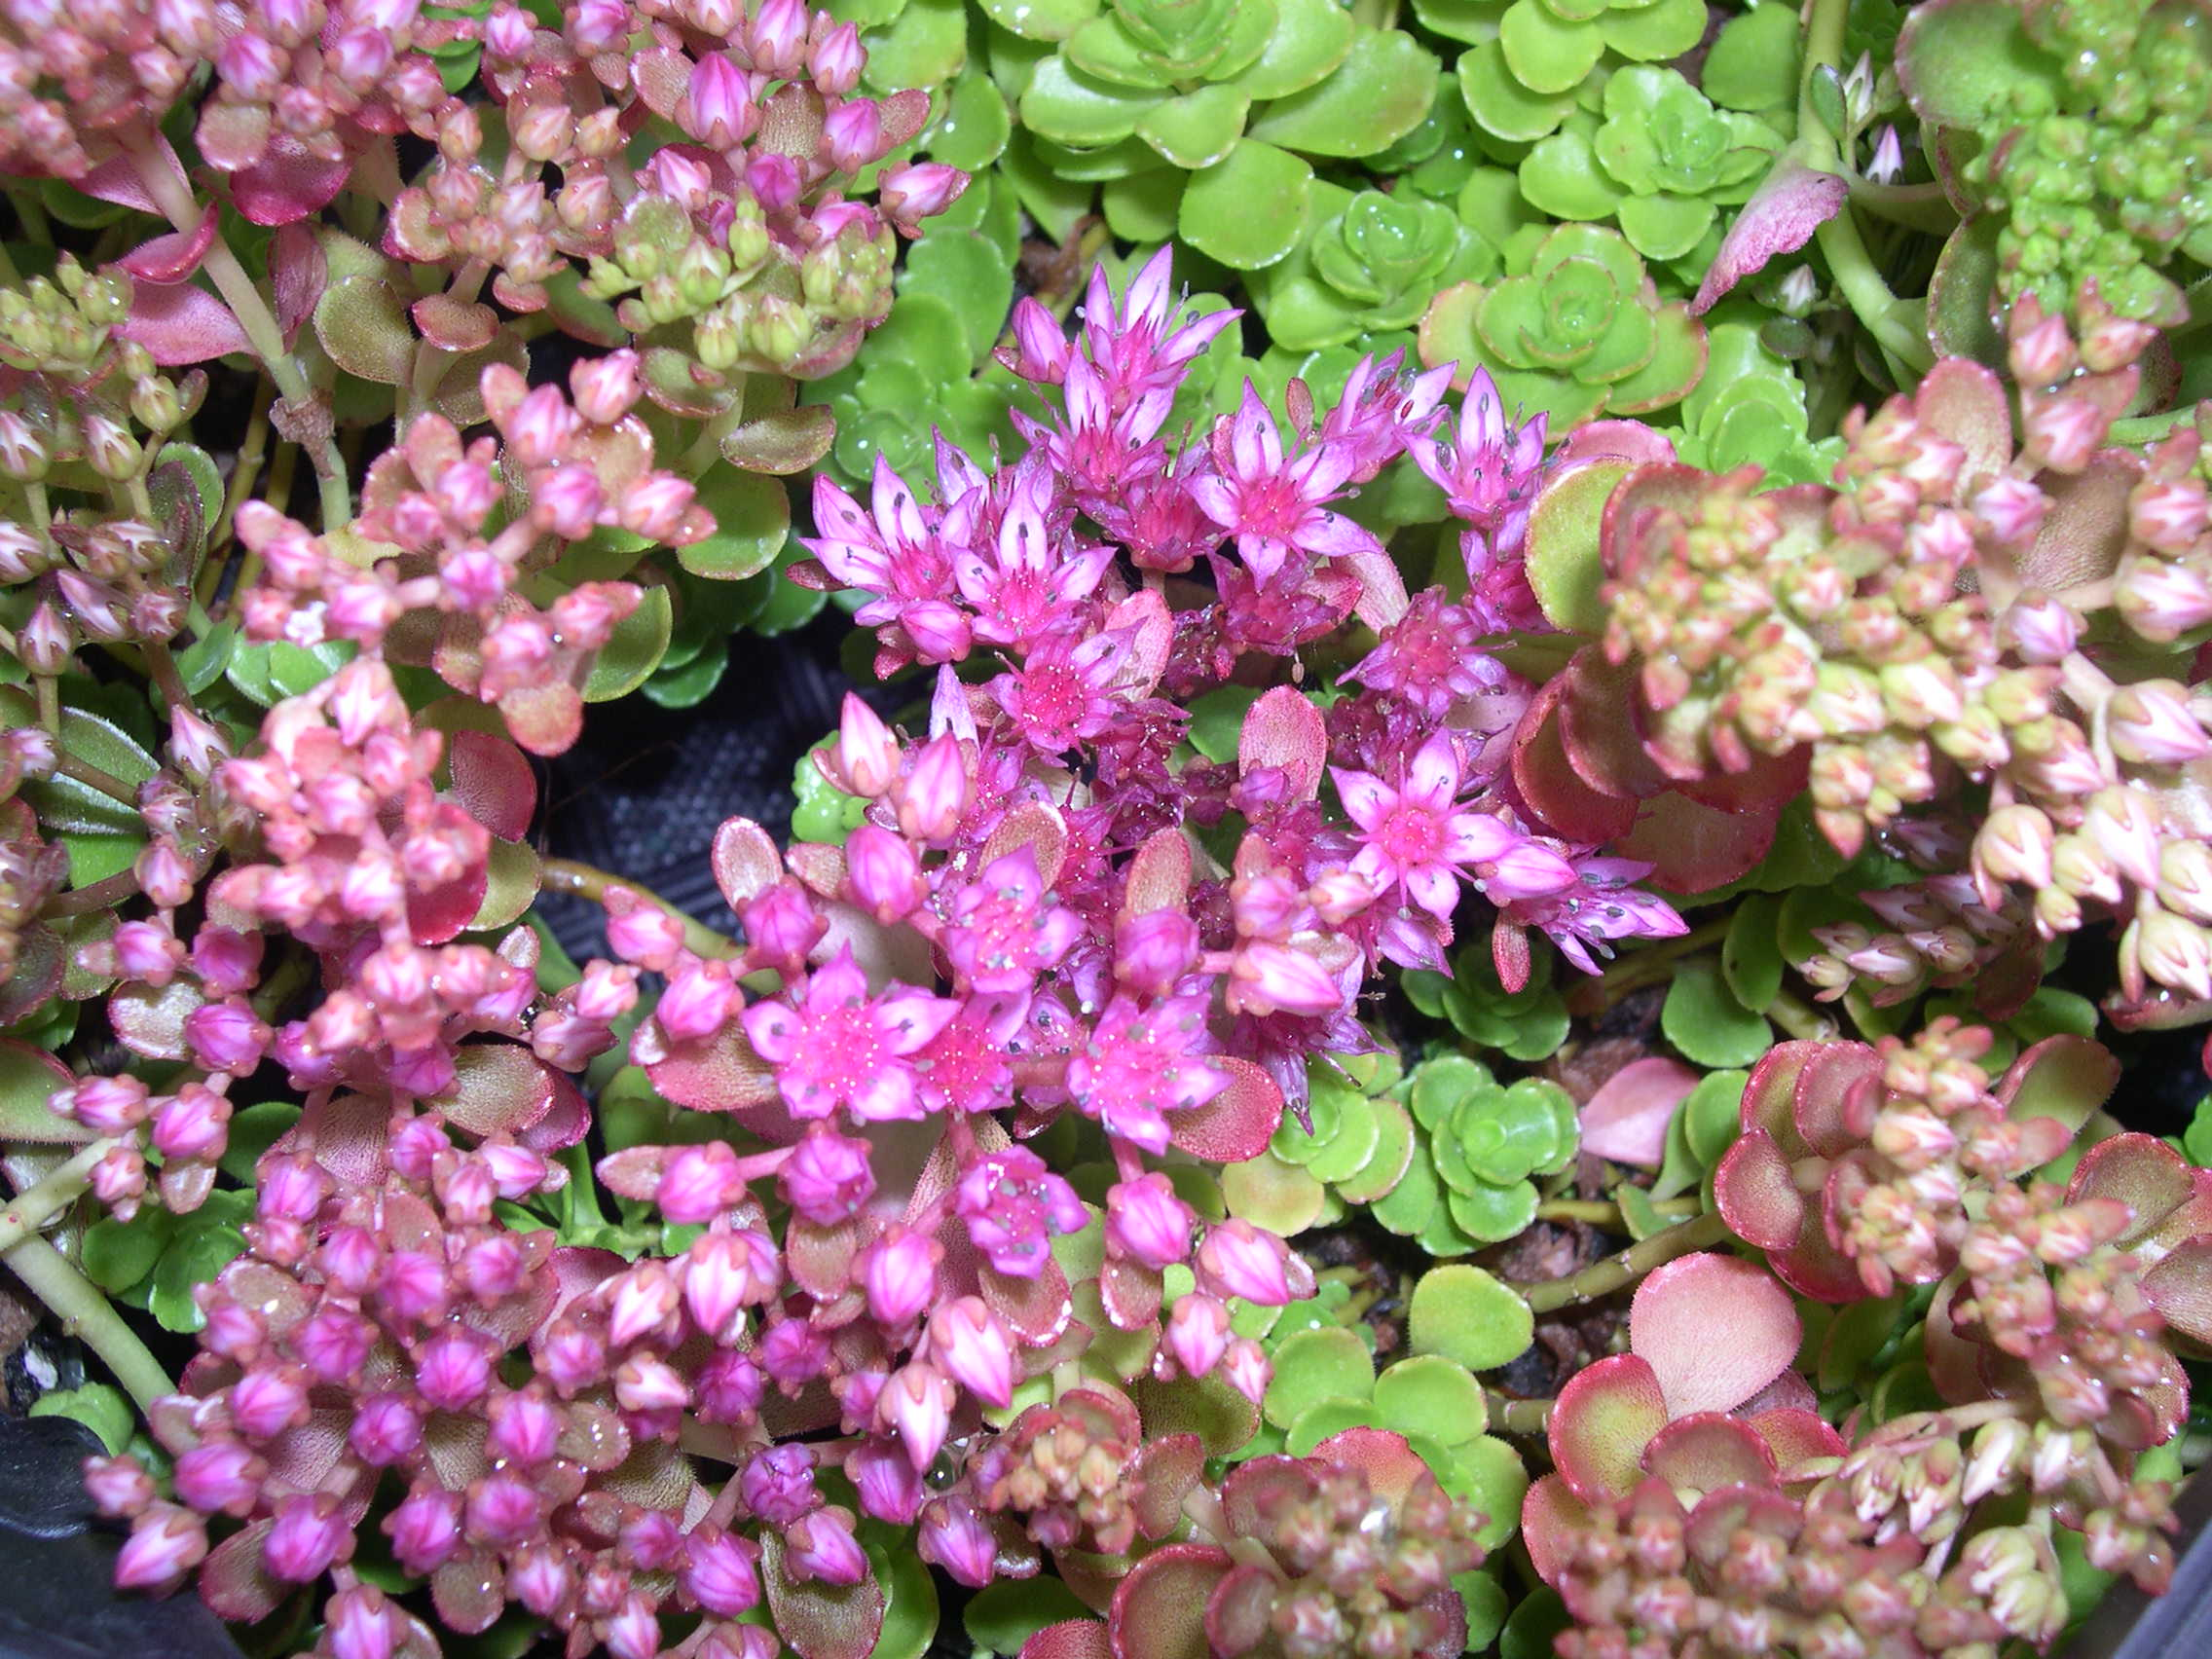 Sedum spurium 'Dr. John Creech' Phedimus spurius 'Dr. John Creech'